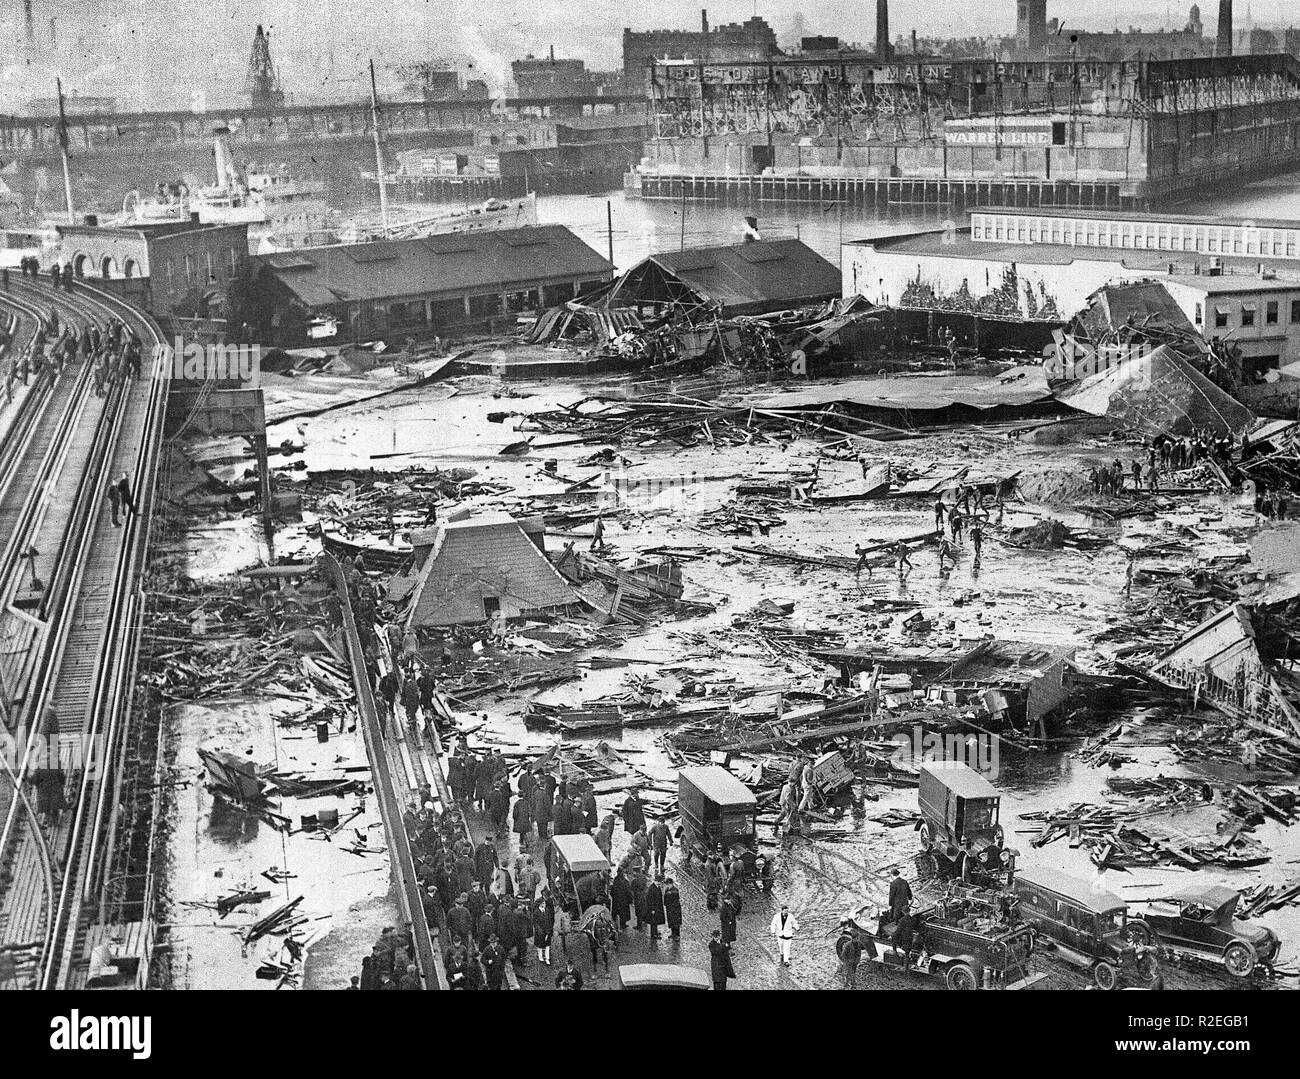 Panorama of the Molasses Disaster site - Twenty one people were killed on Commercial Street in the North End when a tank of molasses ruptured and exploded. An eight foot wave of the syrupy brown liquid moved down Commercial Street at a speed of 35mph. Wreckage of the collapsed tank visible in background, center, next to light colored warehouse. Elevated railway structure visible at far left and the North End Park bathing beach to the far right. January 15, 1919 - Stock Image